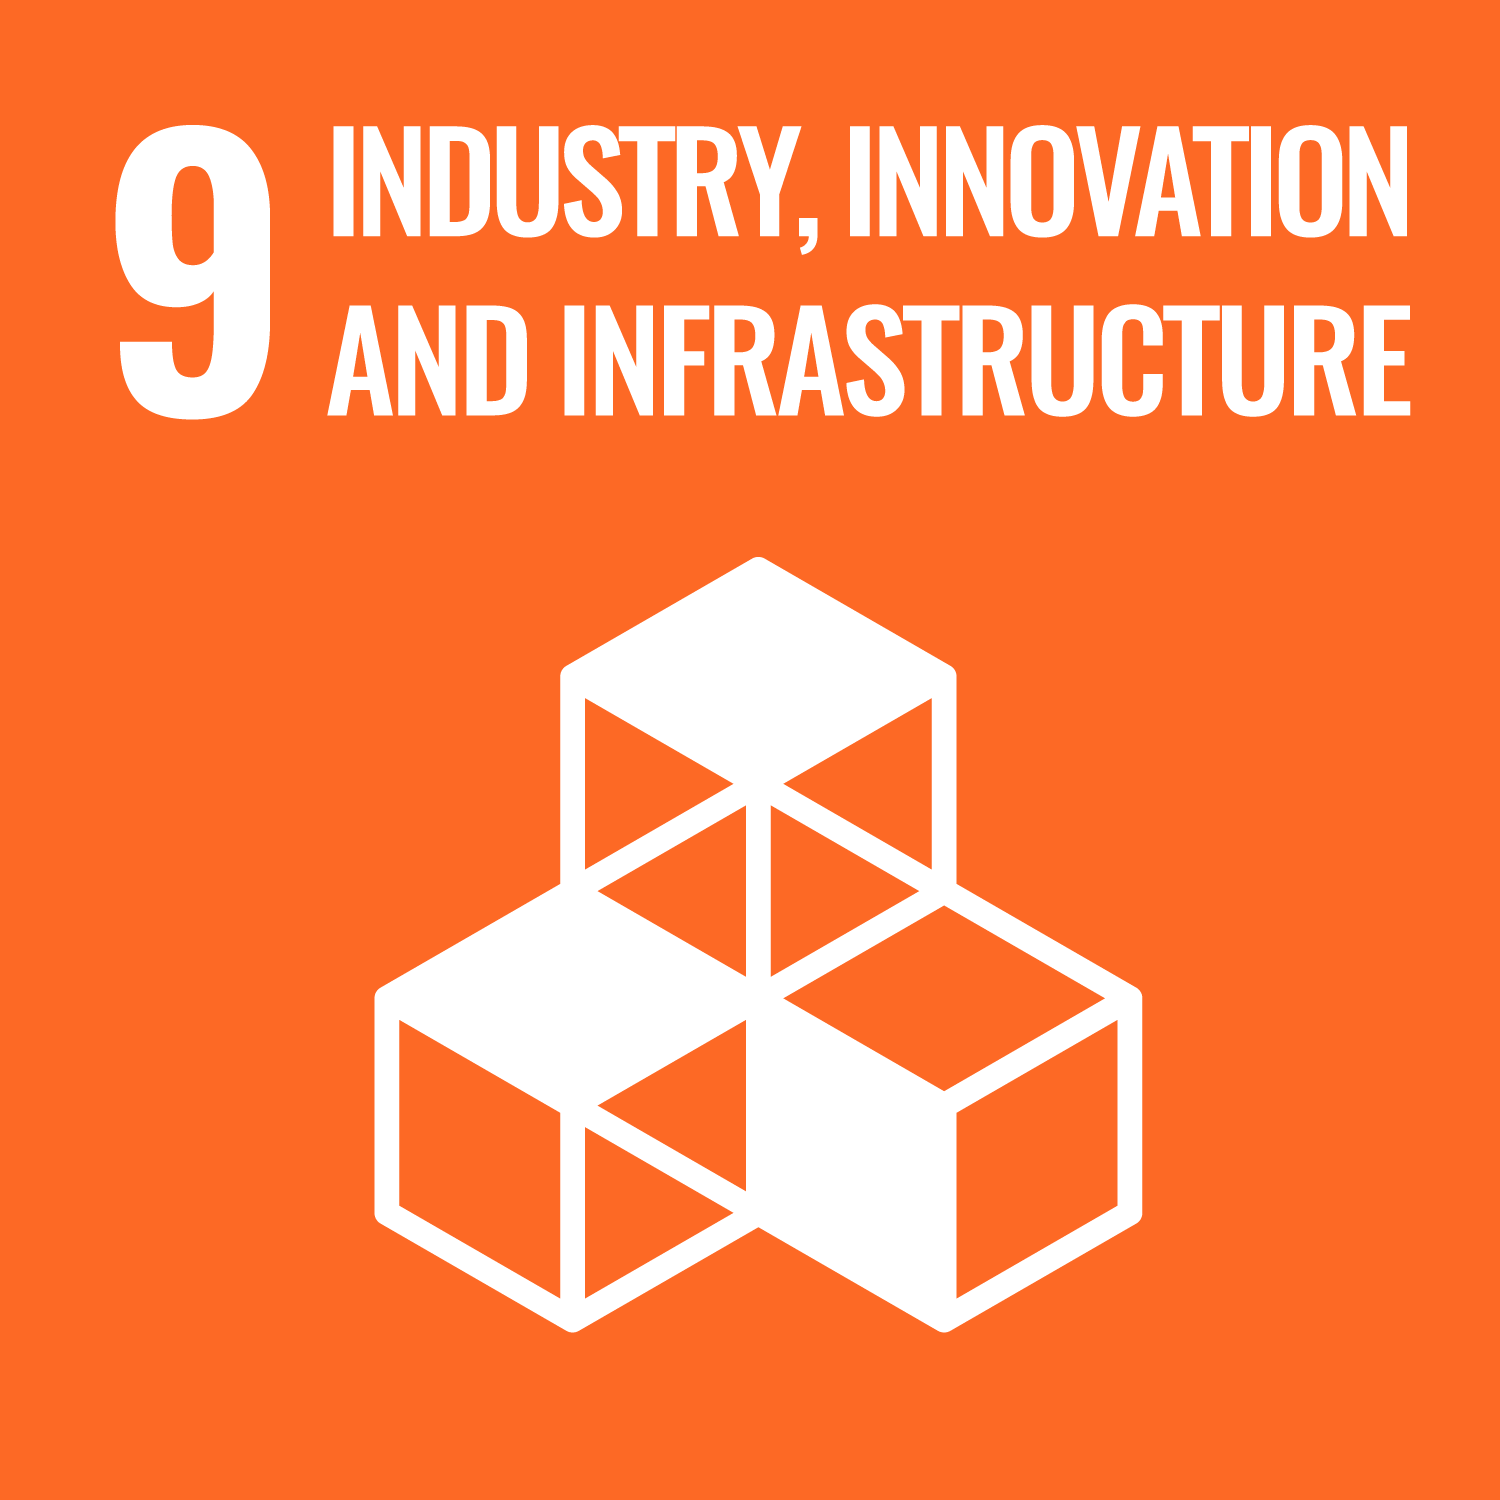 Logo featuring industry, innovation and infrastructure